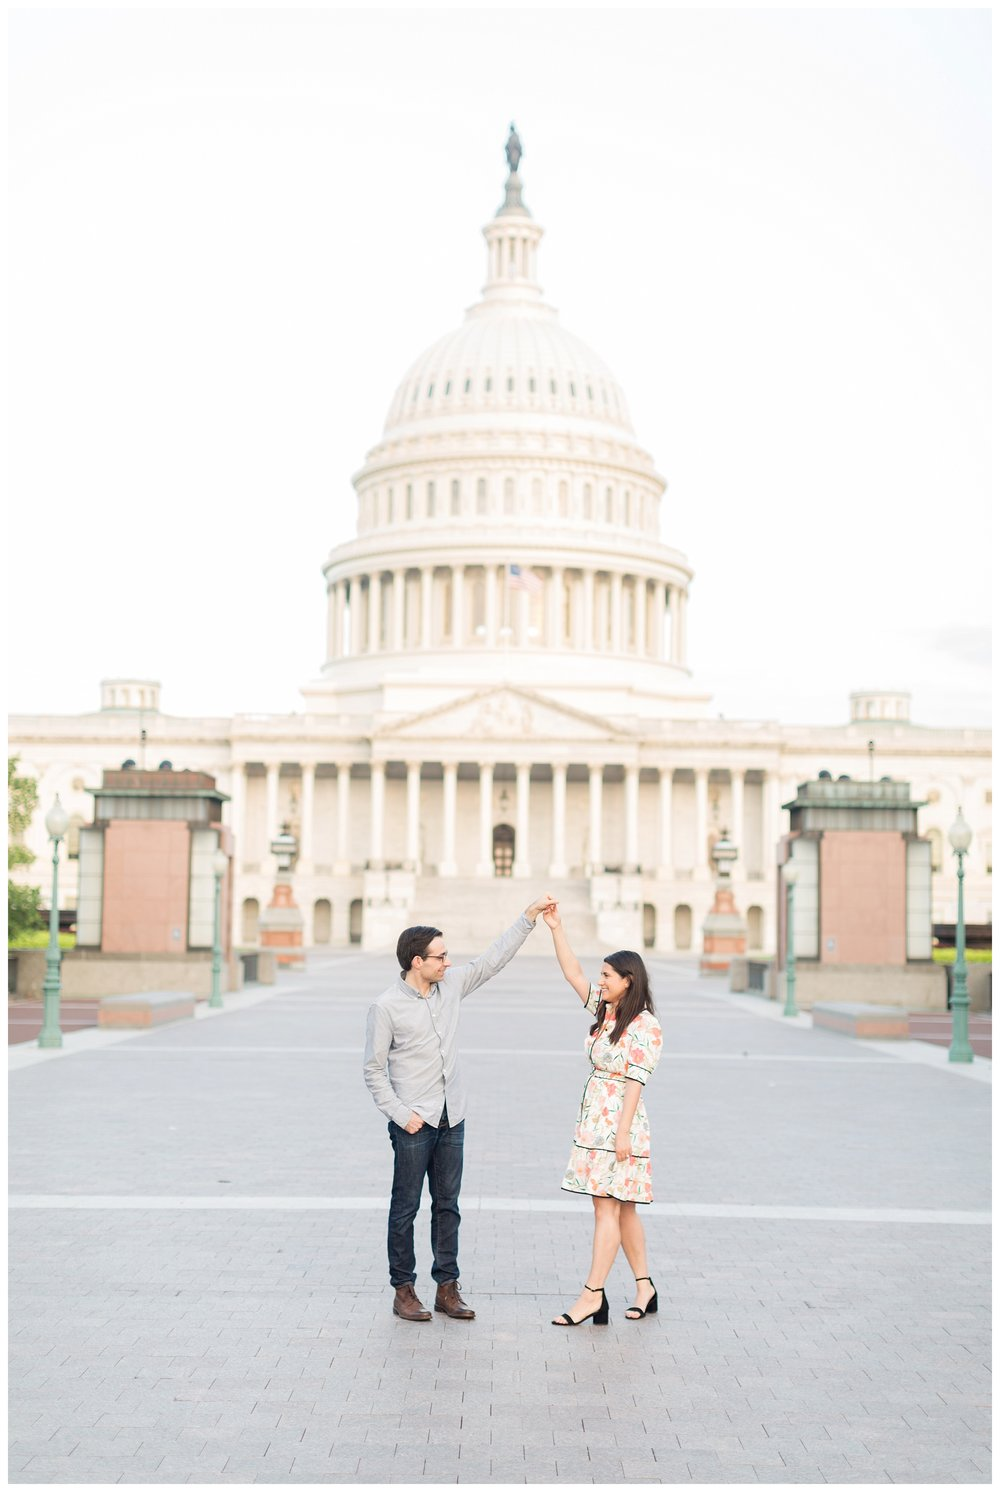 Capitol Hill Engagement Photos DC Wedding Photographer Kir Tuben_0005.jpg